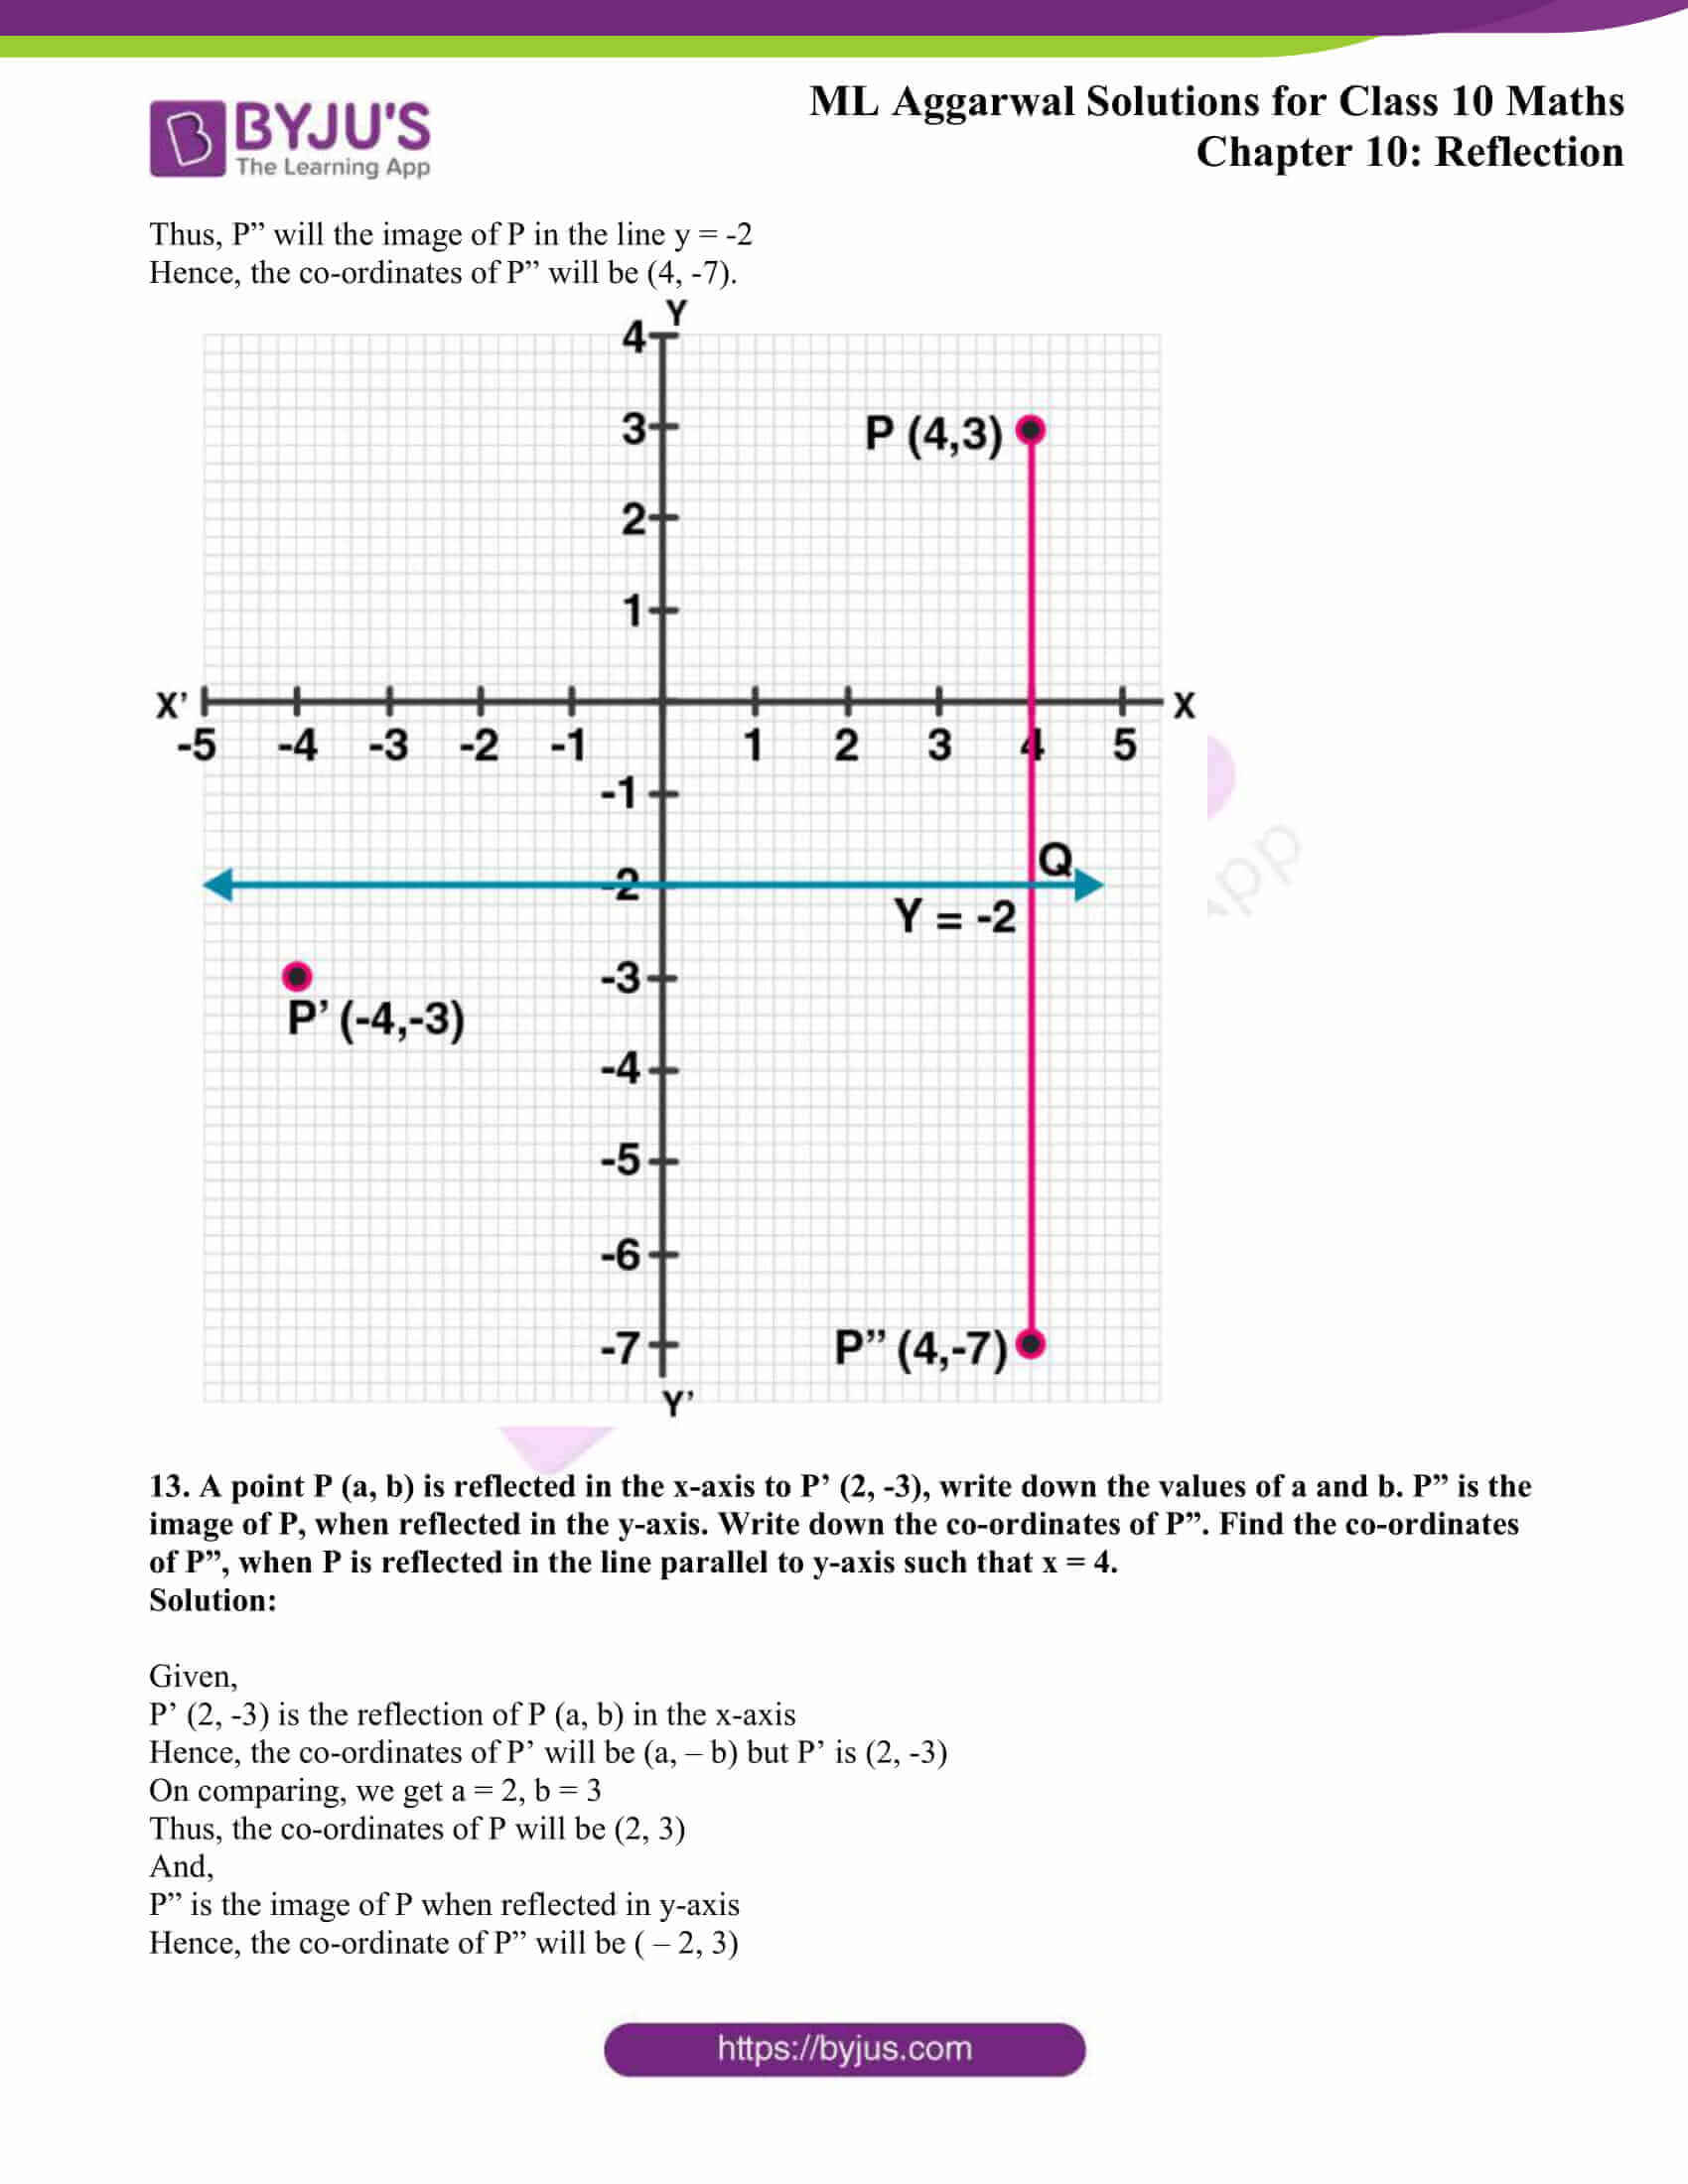 ml aggarwal solutions class 10 maths chapter 10 07